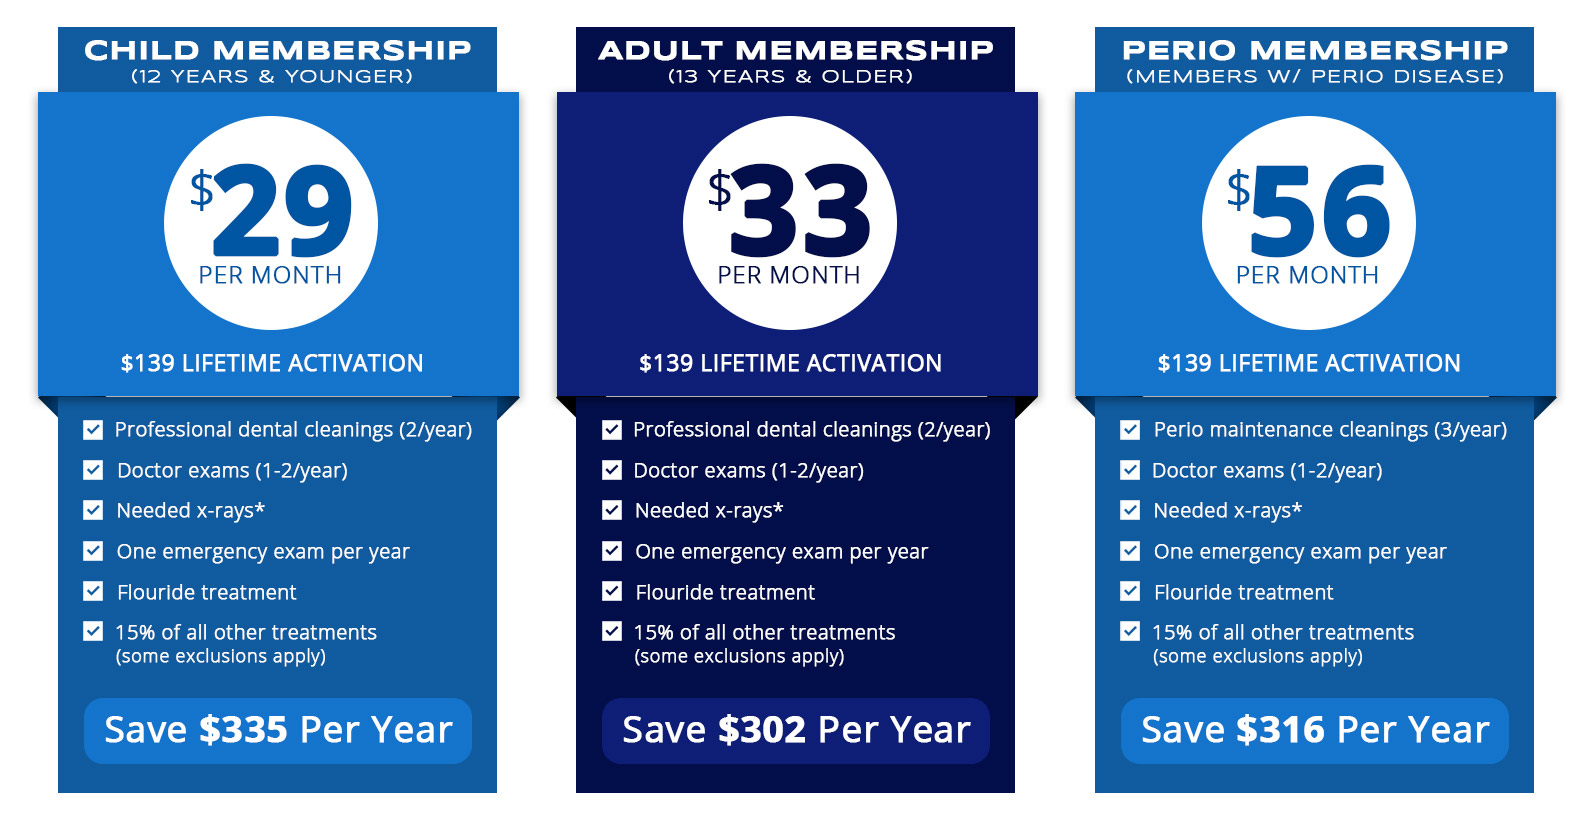 Ford Dental Group Membership Club plans for child, adult, and perio patients